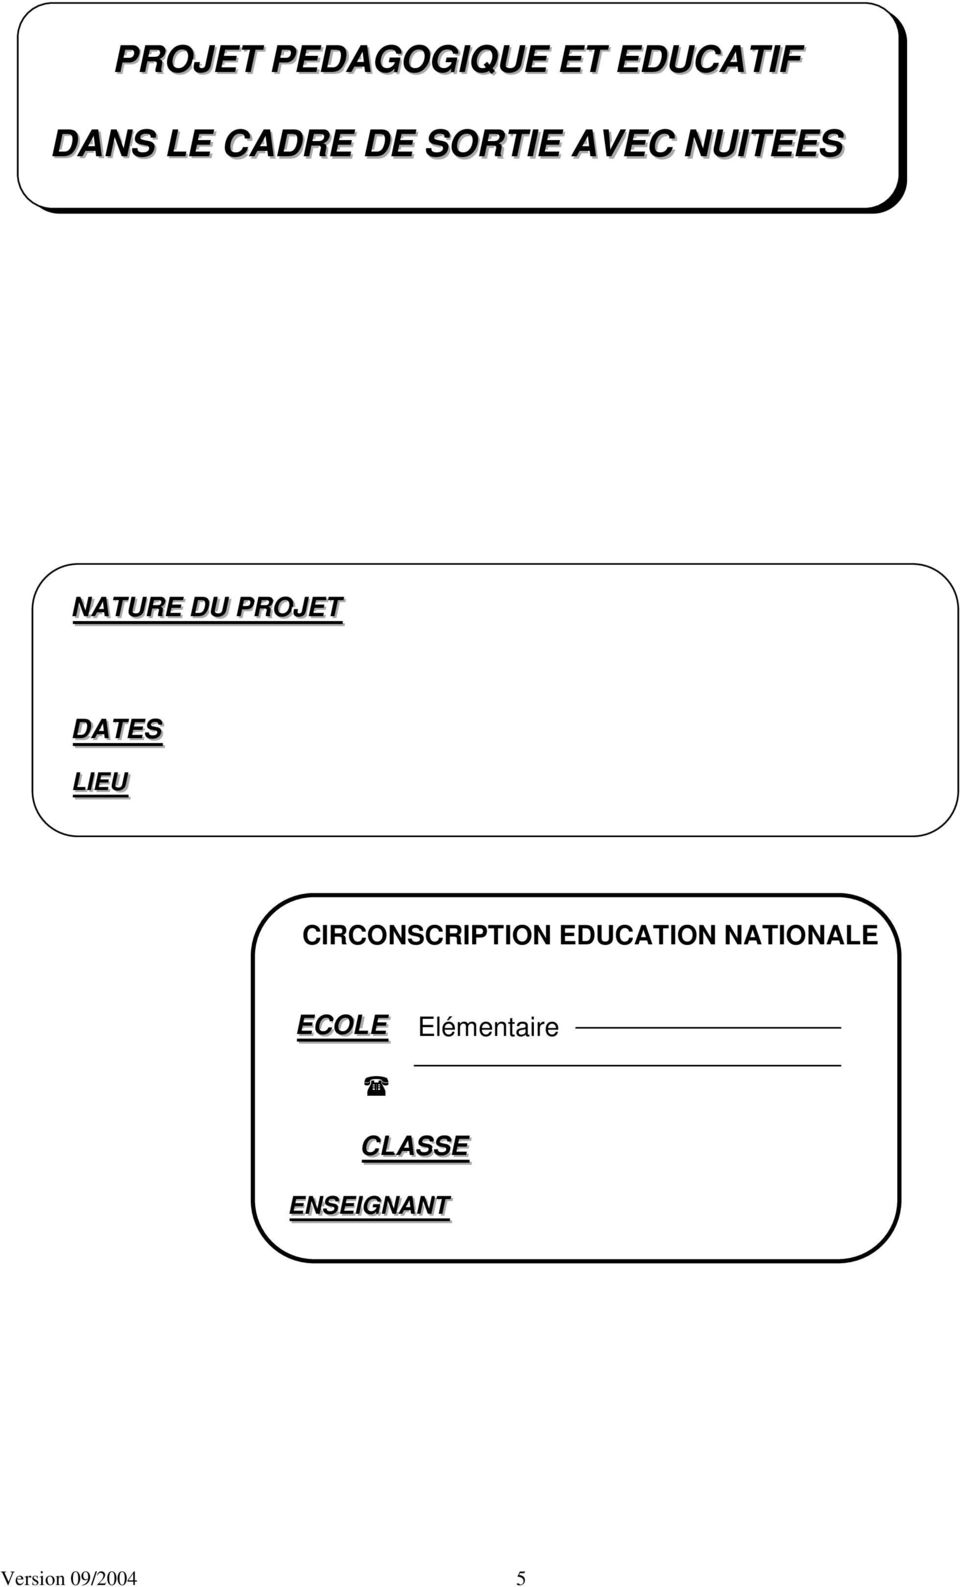 LLI IEU CIRCONSCRIPTION EDUCATION NATIONALE